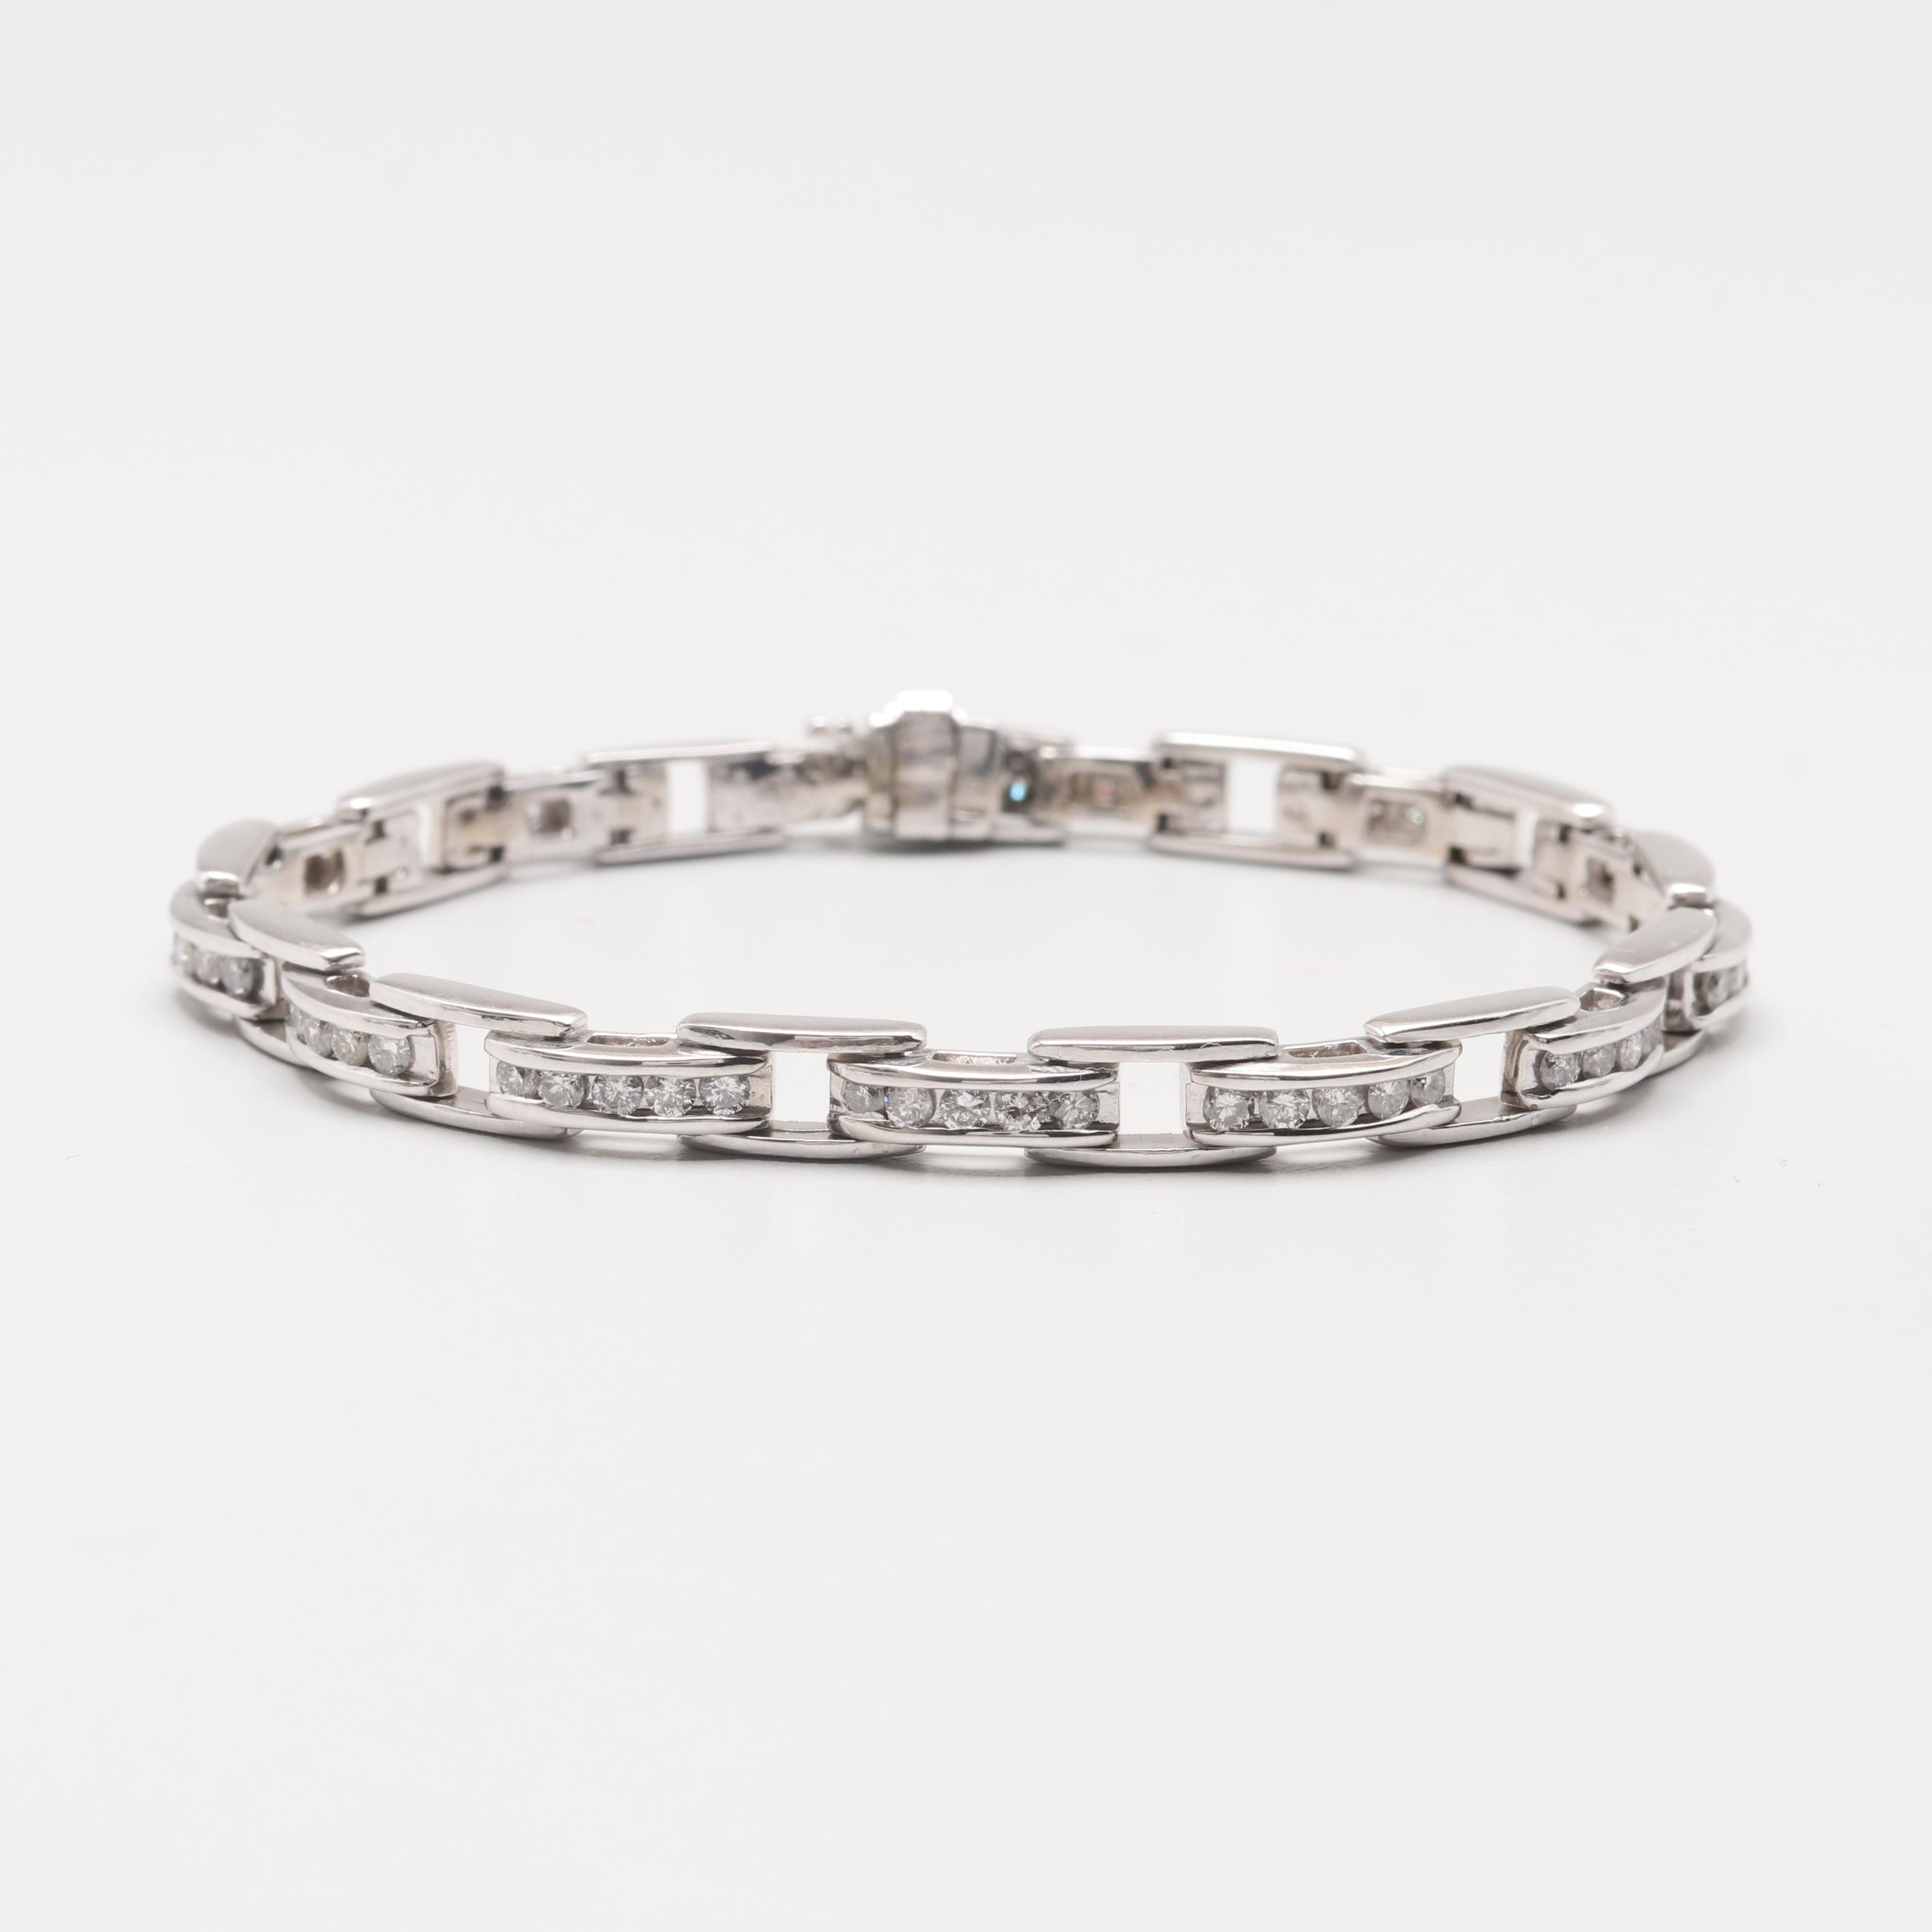 14K White Gold 1.97 CTW Diamond Bracelet